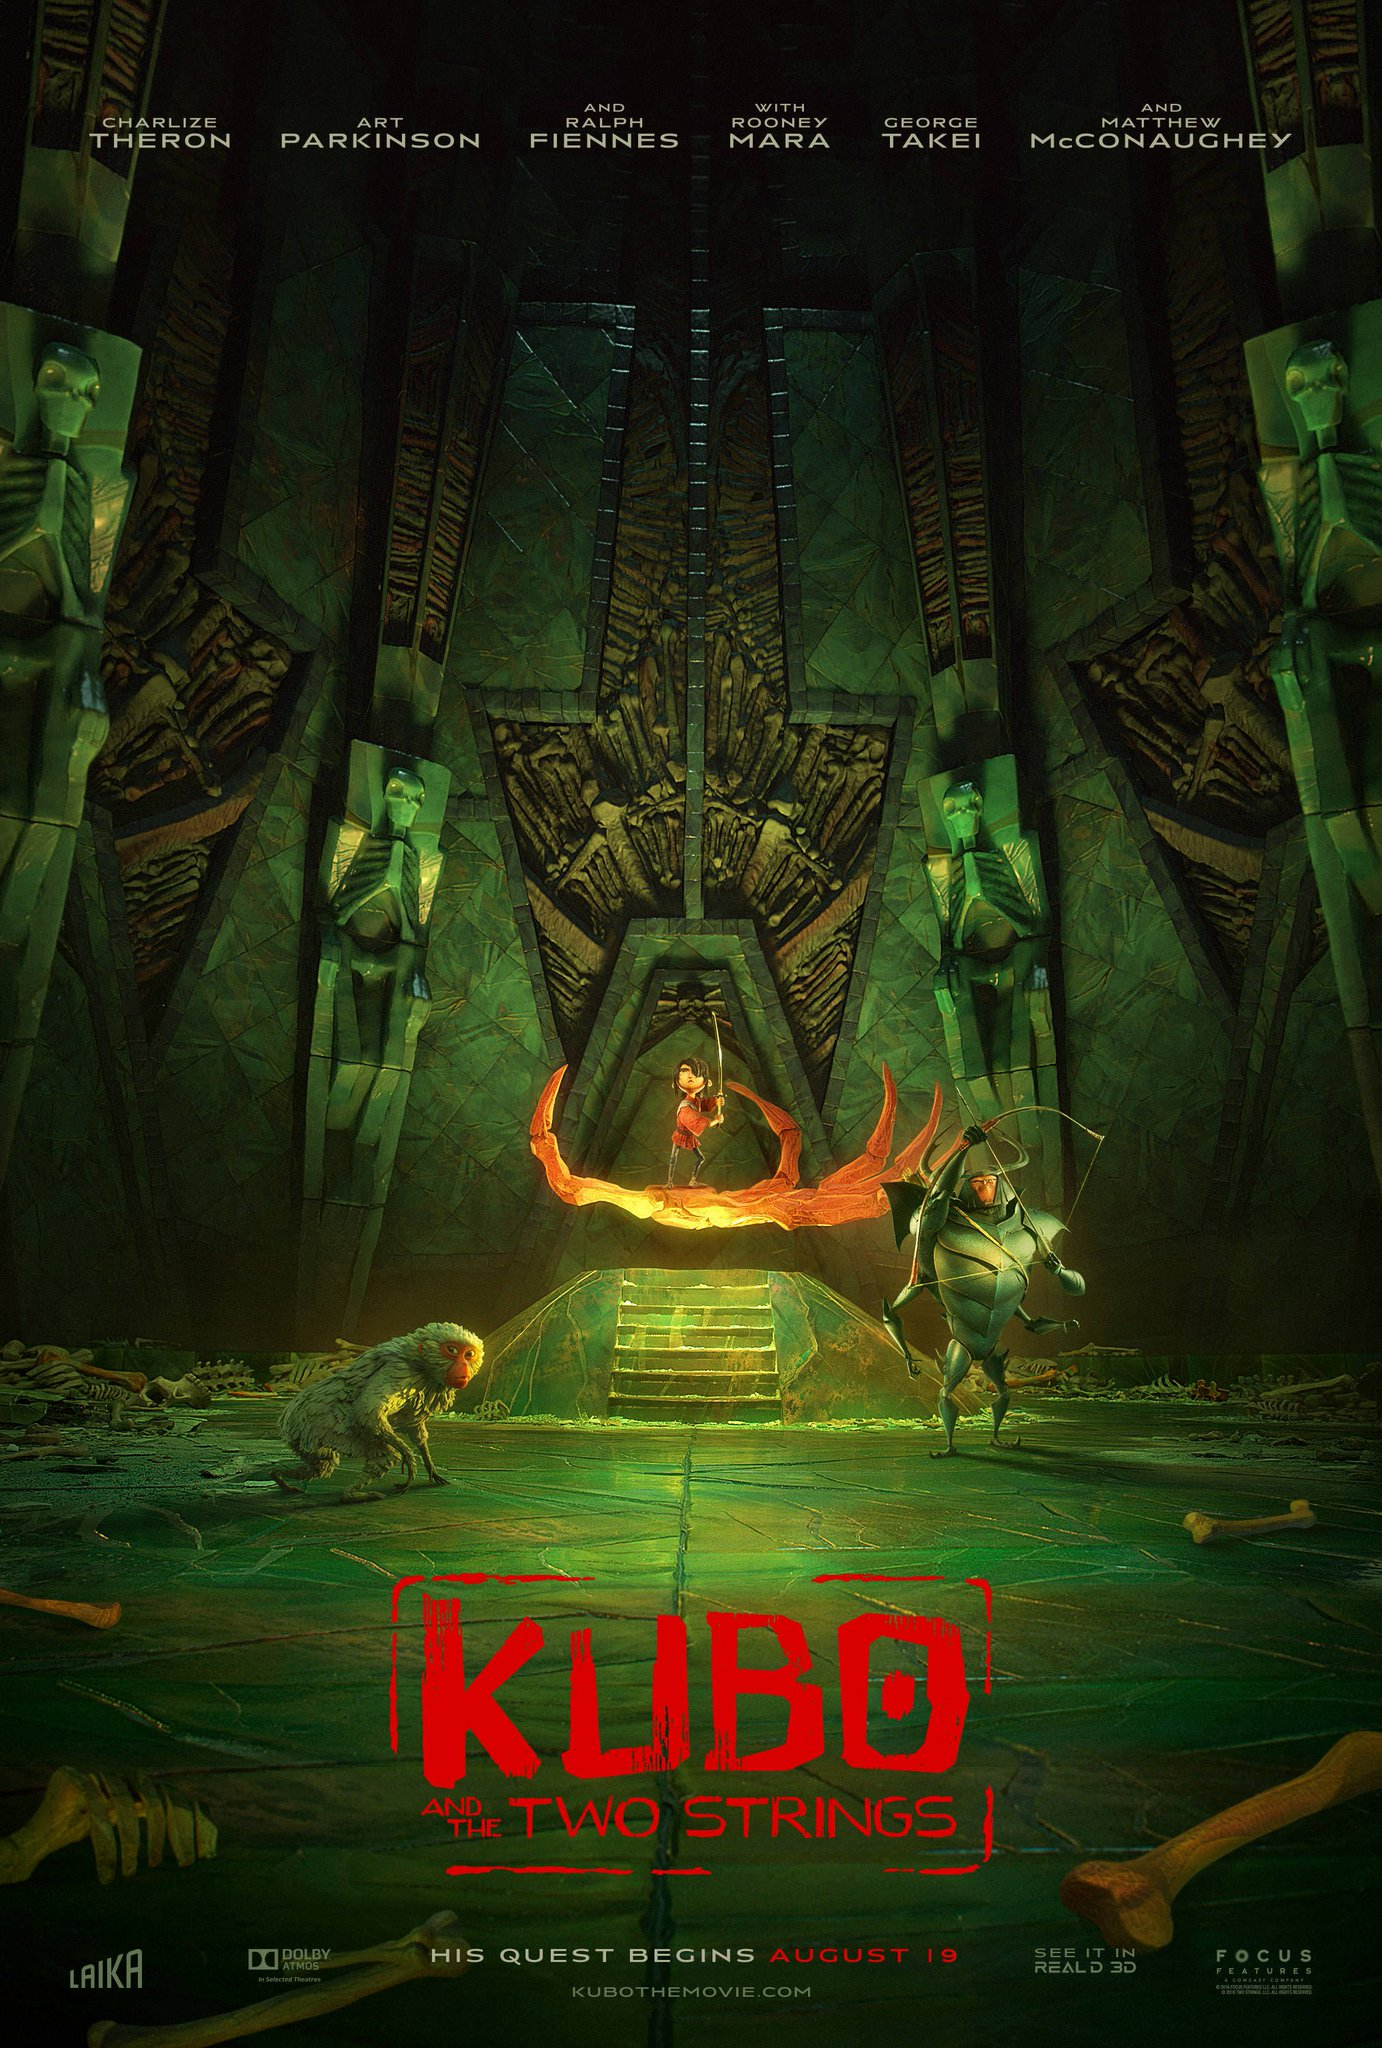 New Kubo and the Two Strings Trailer & Posters Revealed 2